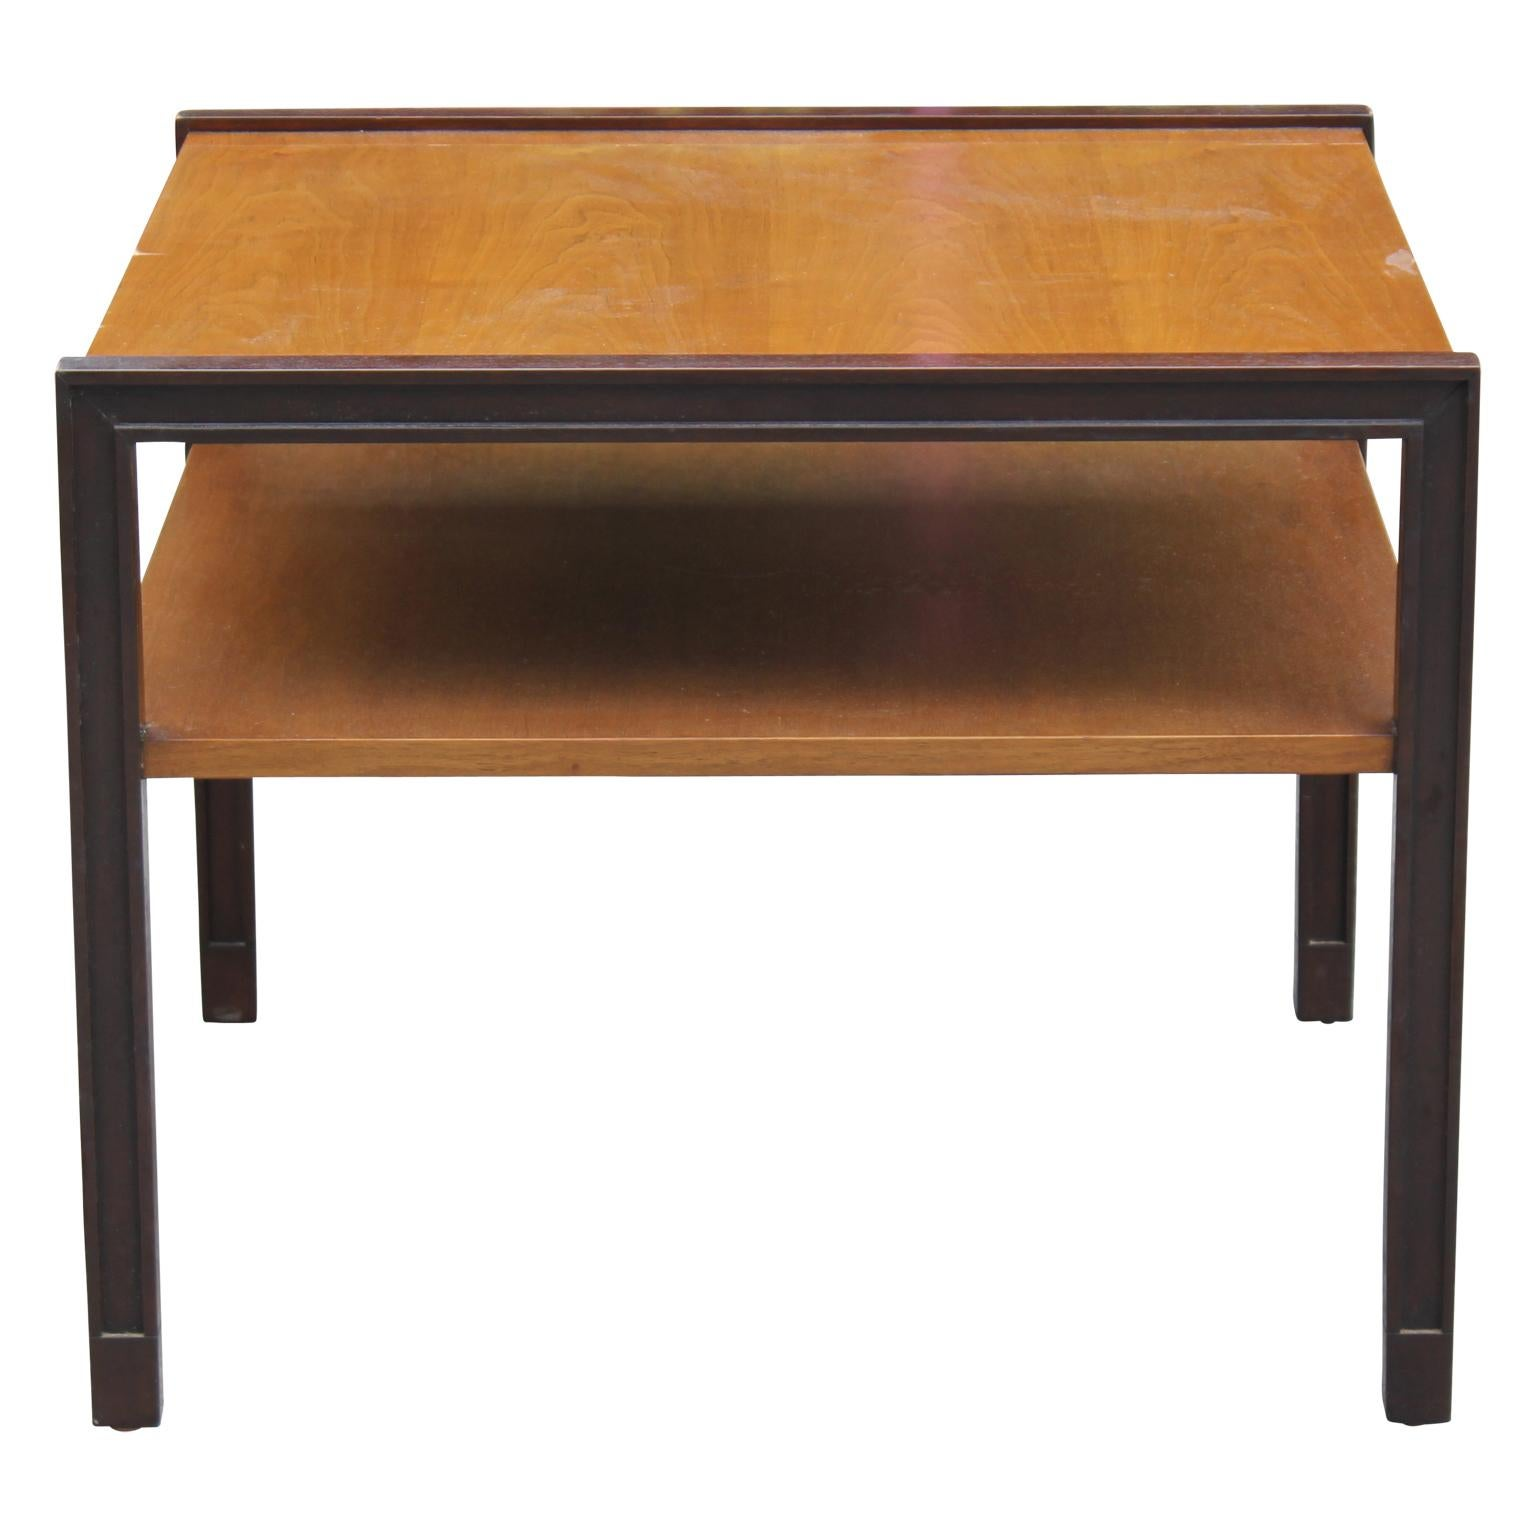 Modern Two-Tone & Two-Tiered Side Table by Edward Wormley for Dunbar